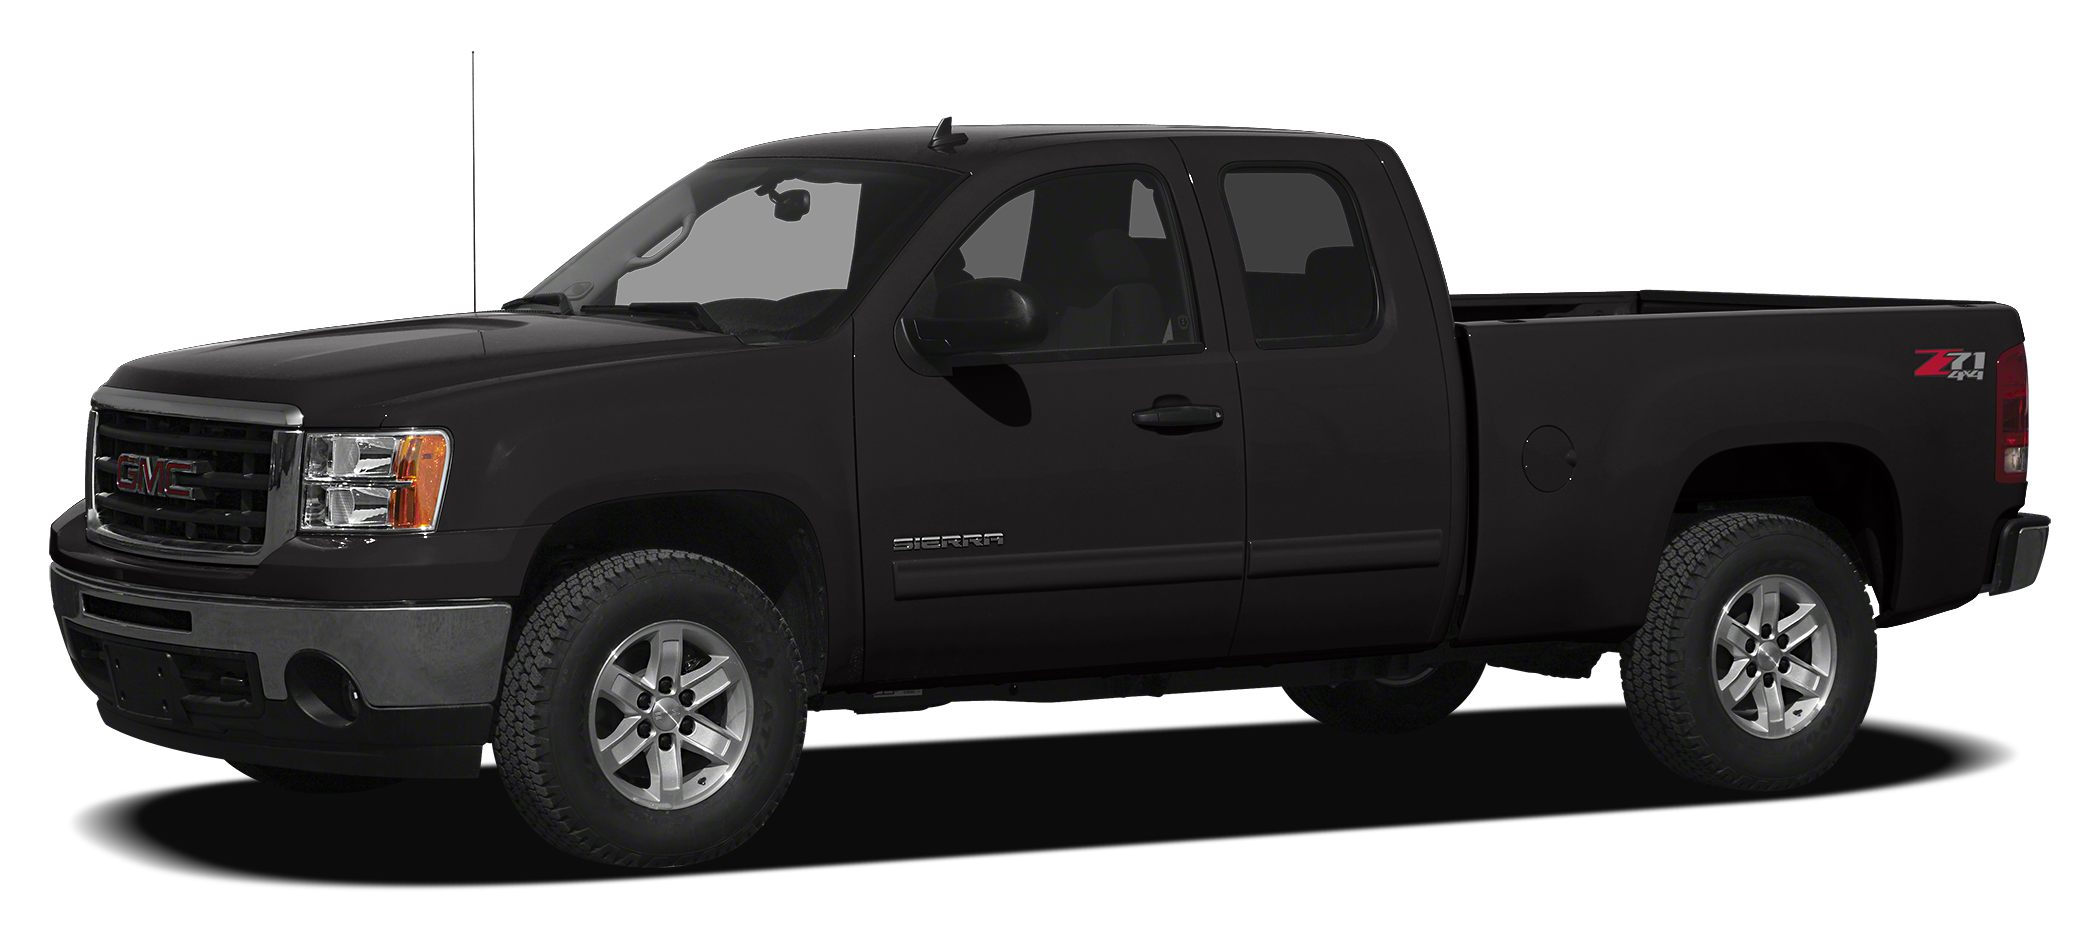 2012 GMC Sierra 1500 SLE Excellent Condition ONLY 50540 Miles LPO POLISHED EXHAUST TIP LPO A